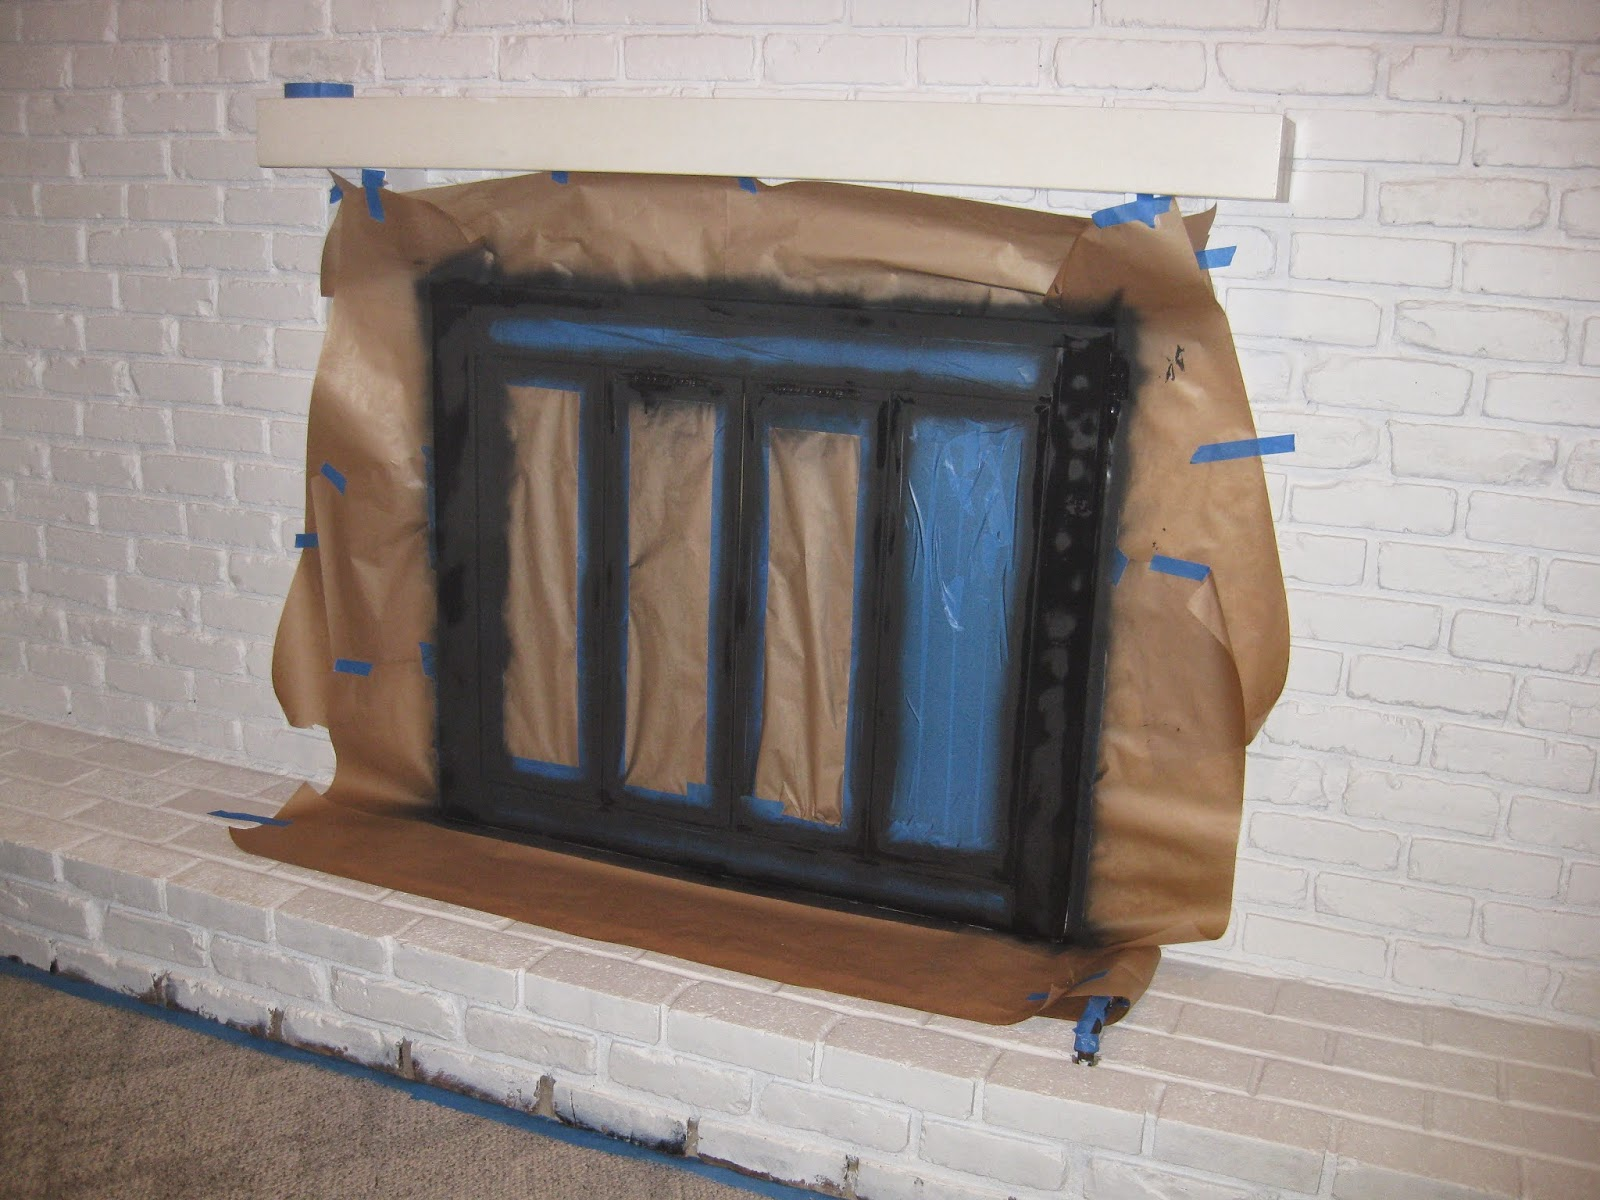 This Is A Gas Fireplace So We Had Large Pipe Sticking Out Of Our Brick I Wred It With Garbage Bag And Decided To Paint Black Too